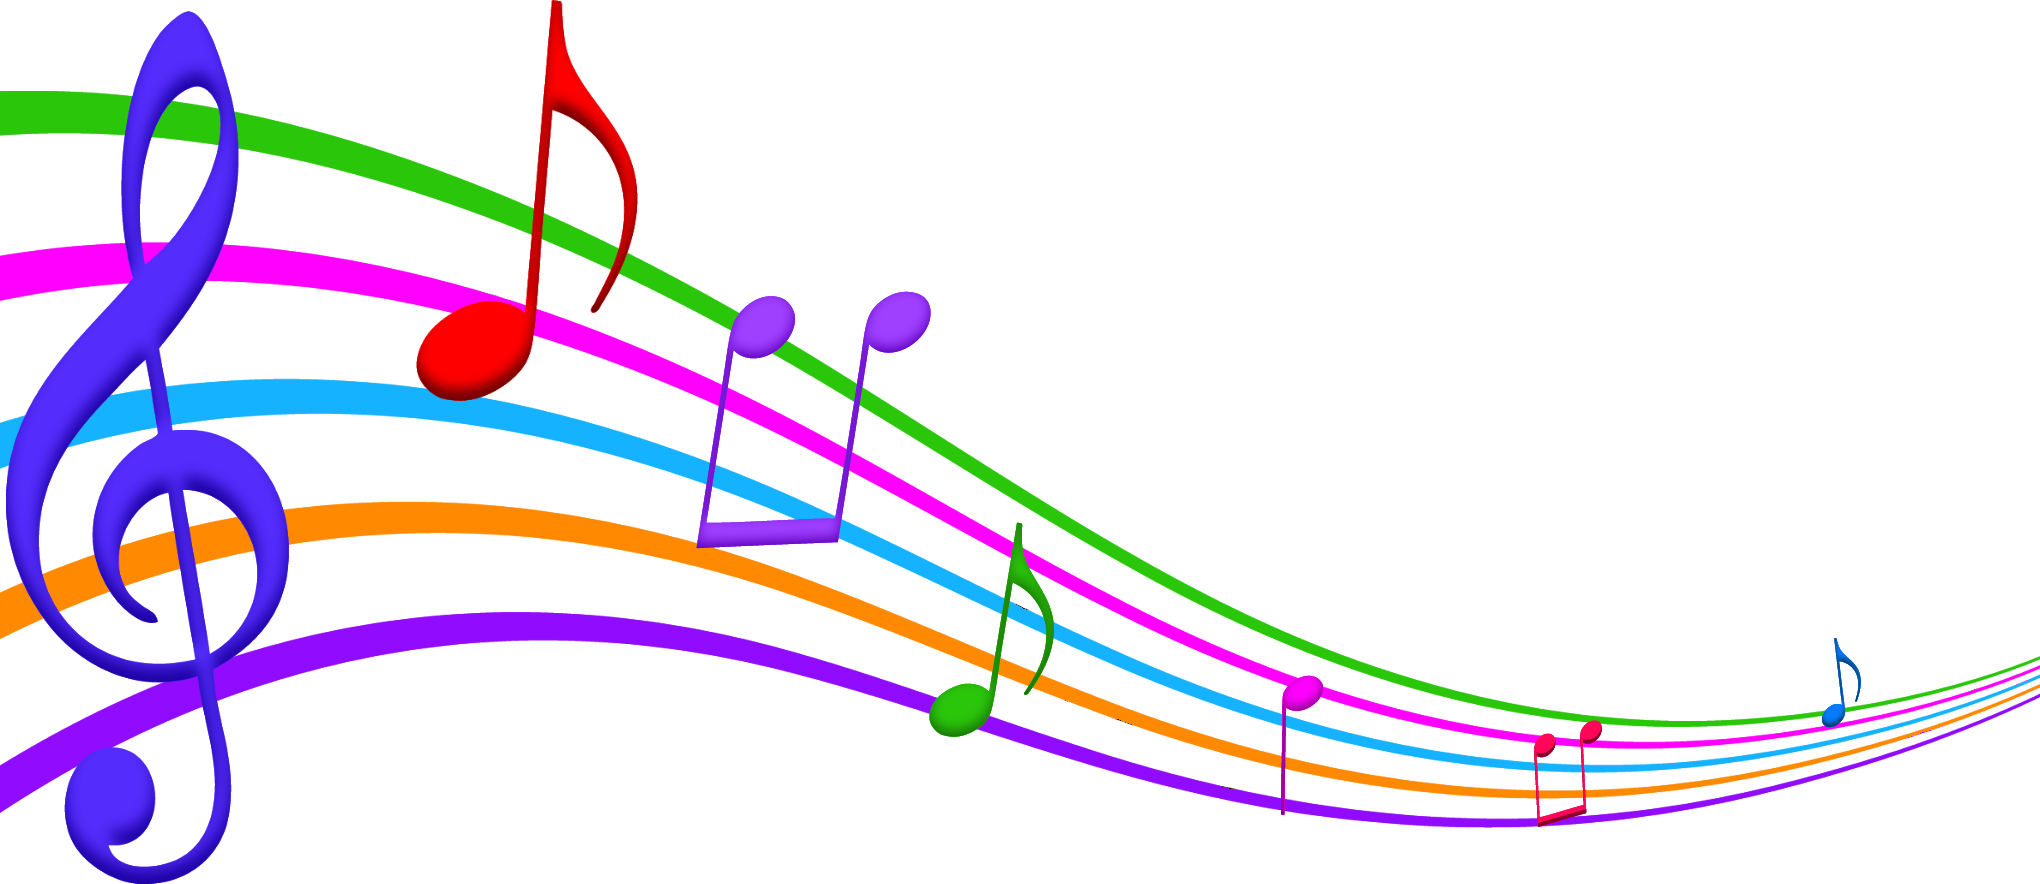 Music-notes-clip-art-music-the .-Music-notes-clip-art-music-the .-9